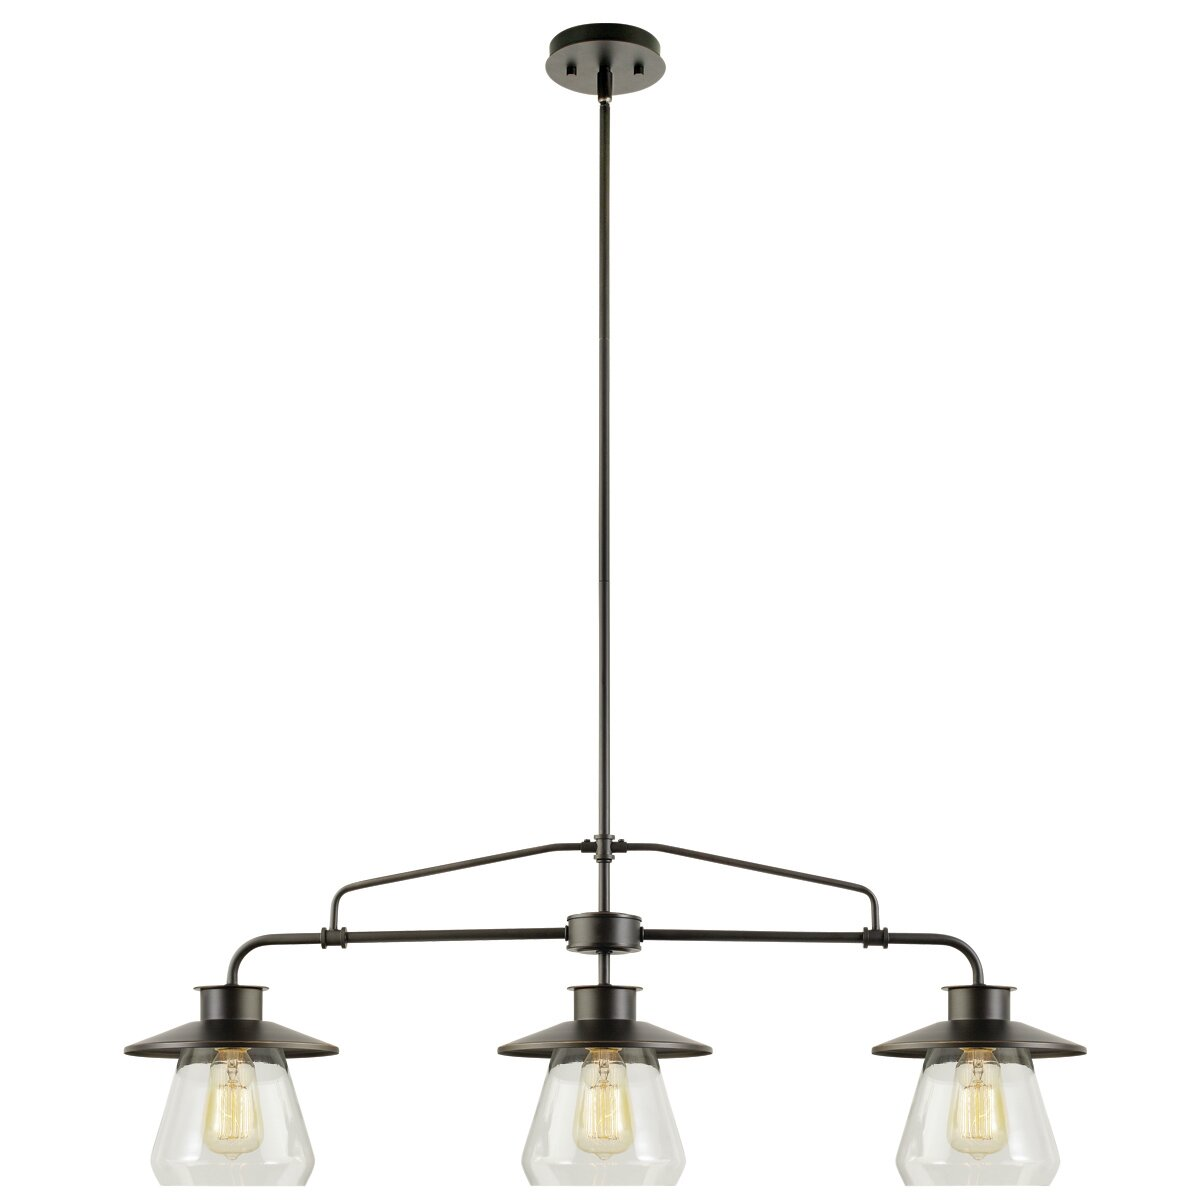 Kitchen Island Pendant Lighting: Globe Electric Company Moyet 3 Light Kitchen Island